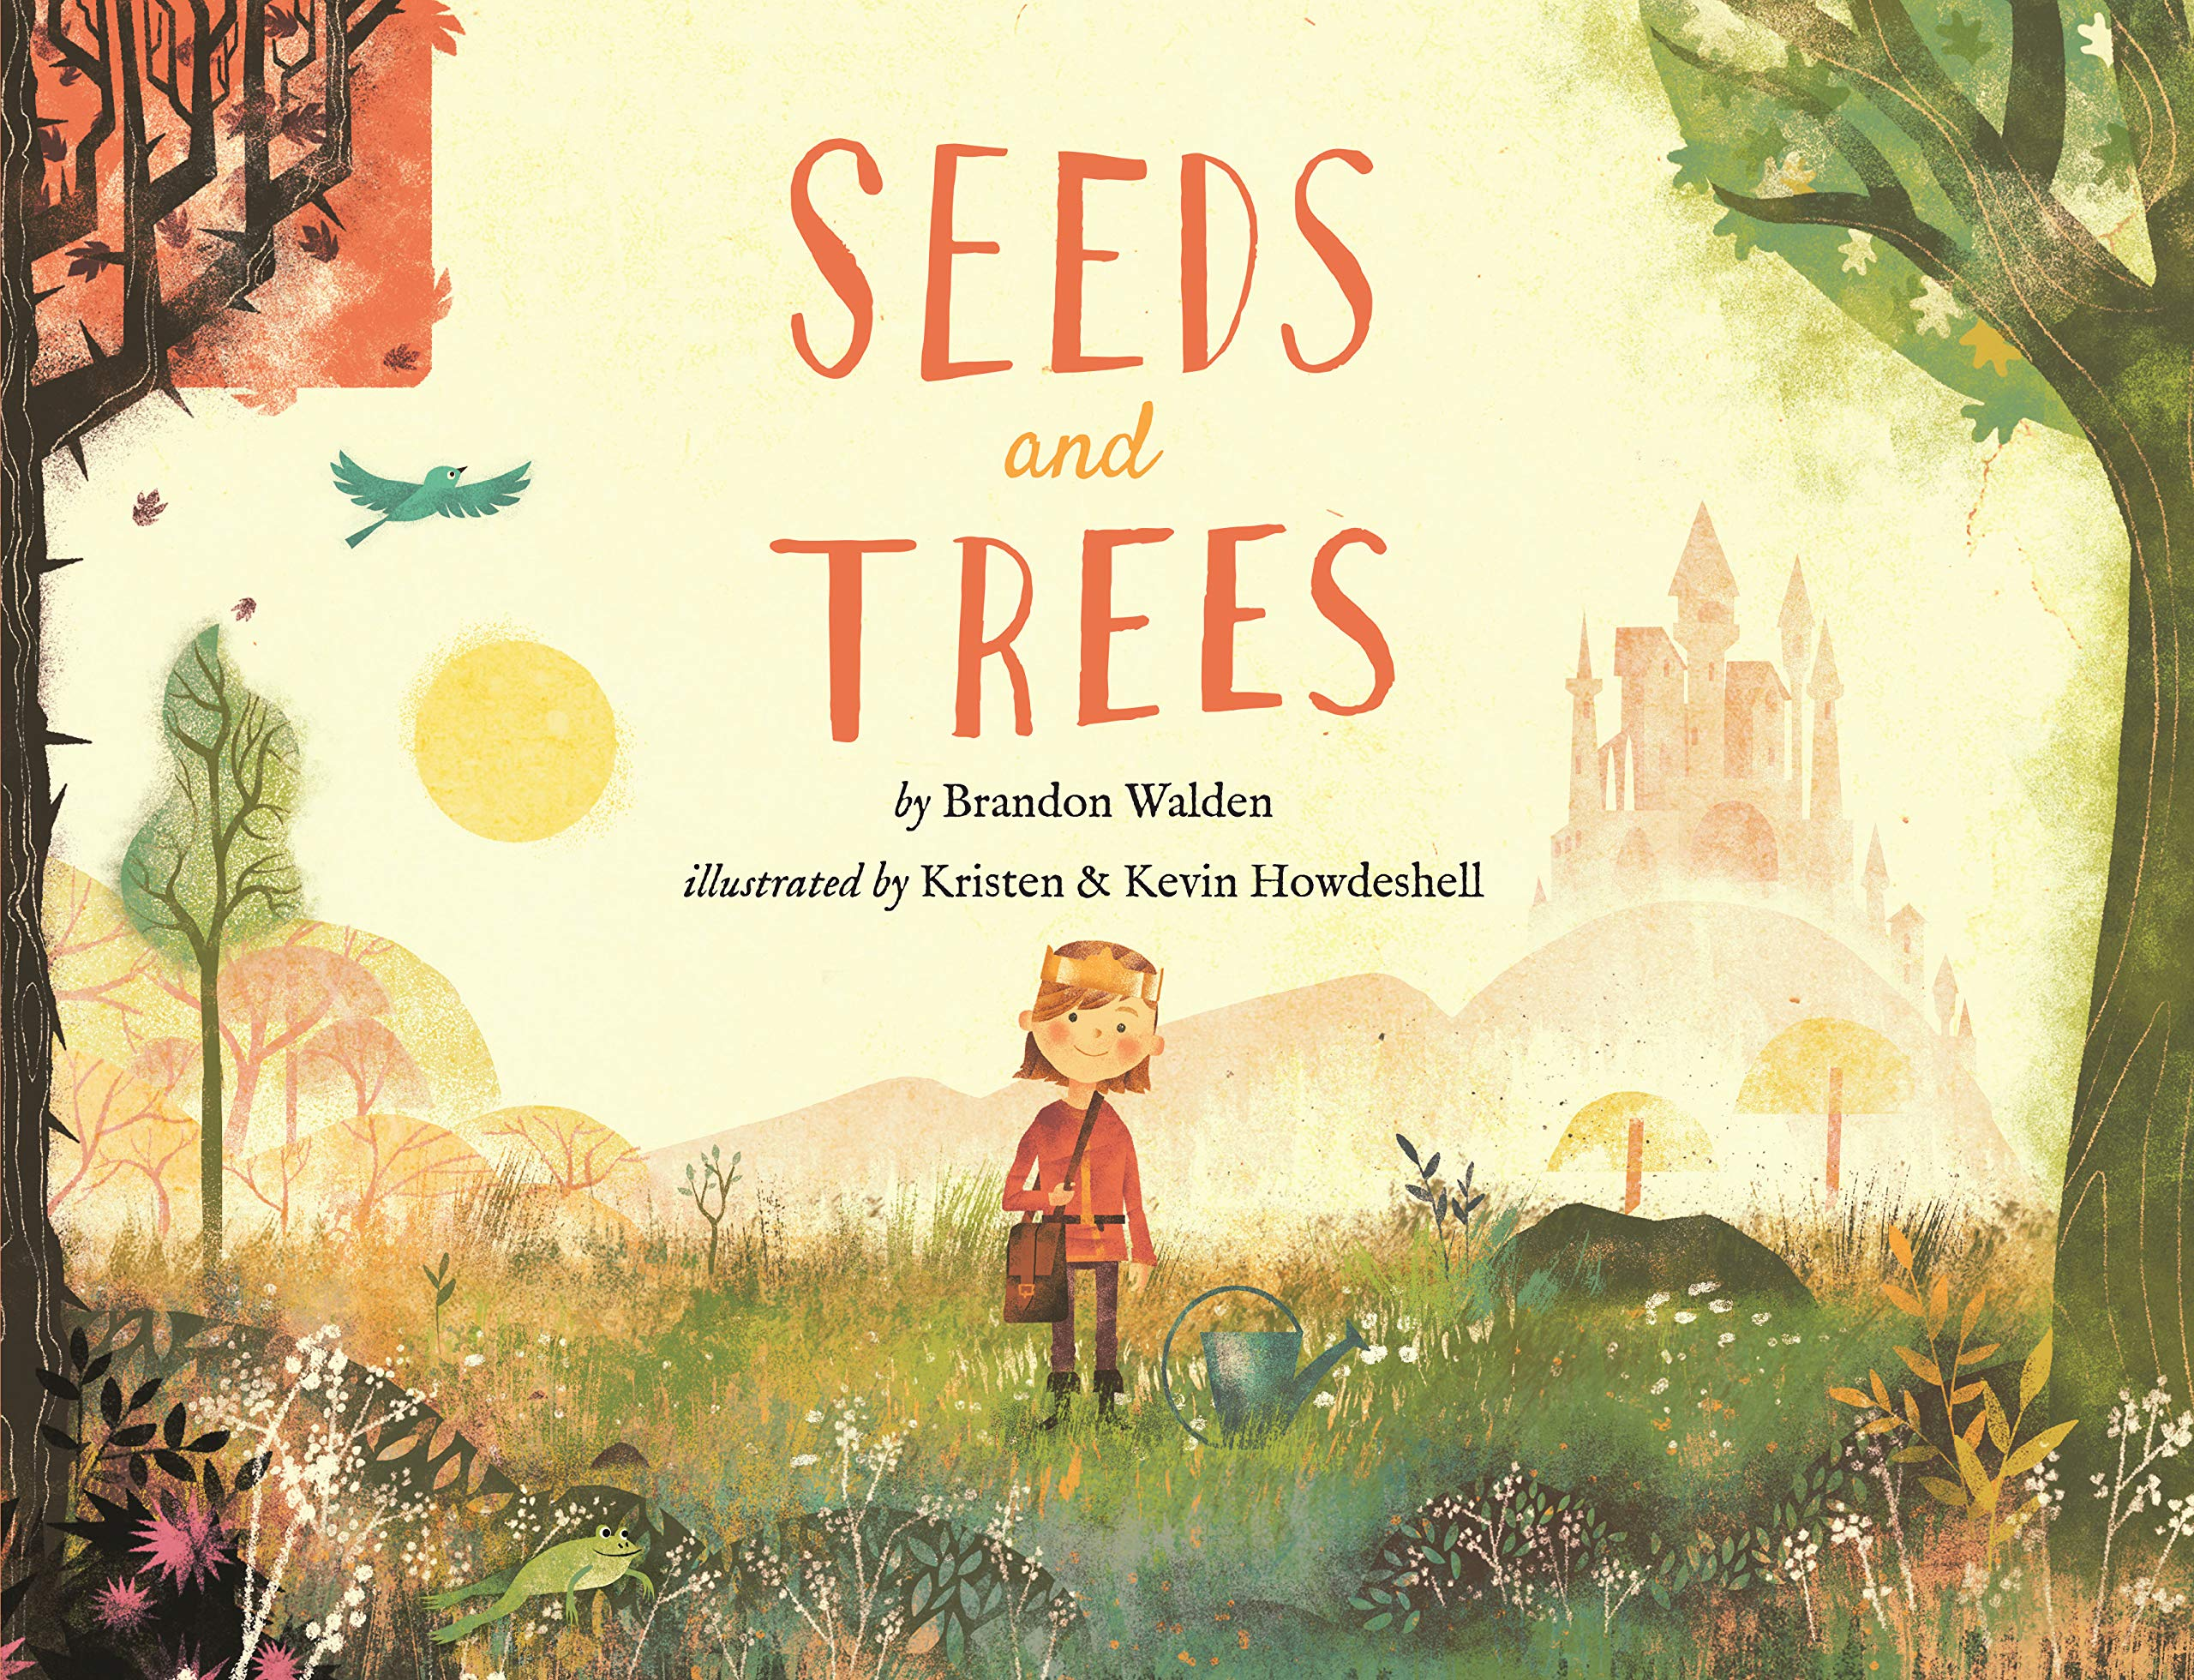 photo of a children's book called seeds and trees